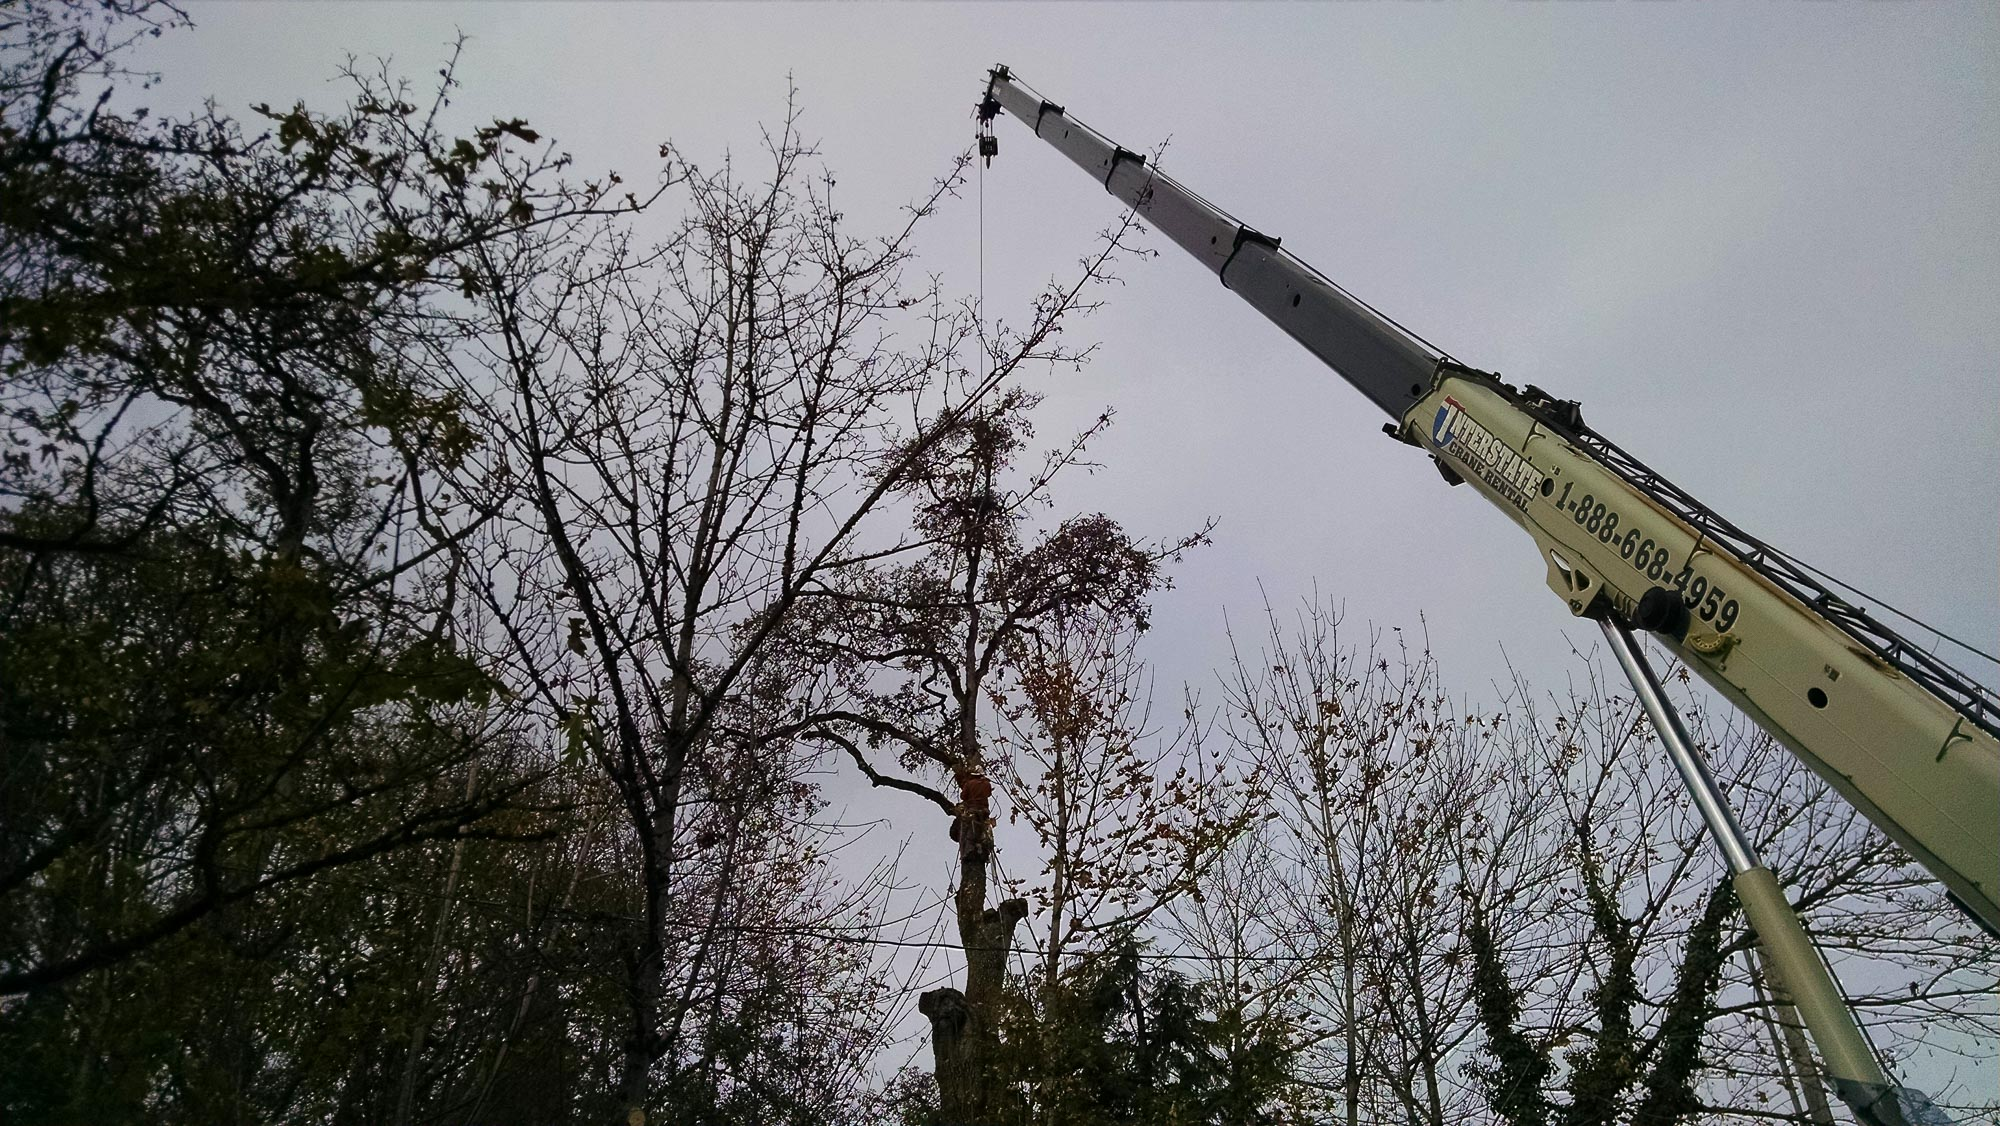 tree-service-removal-pruning-salem-oregon-547